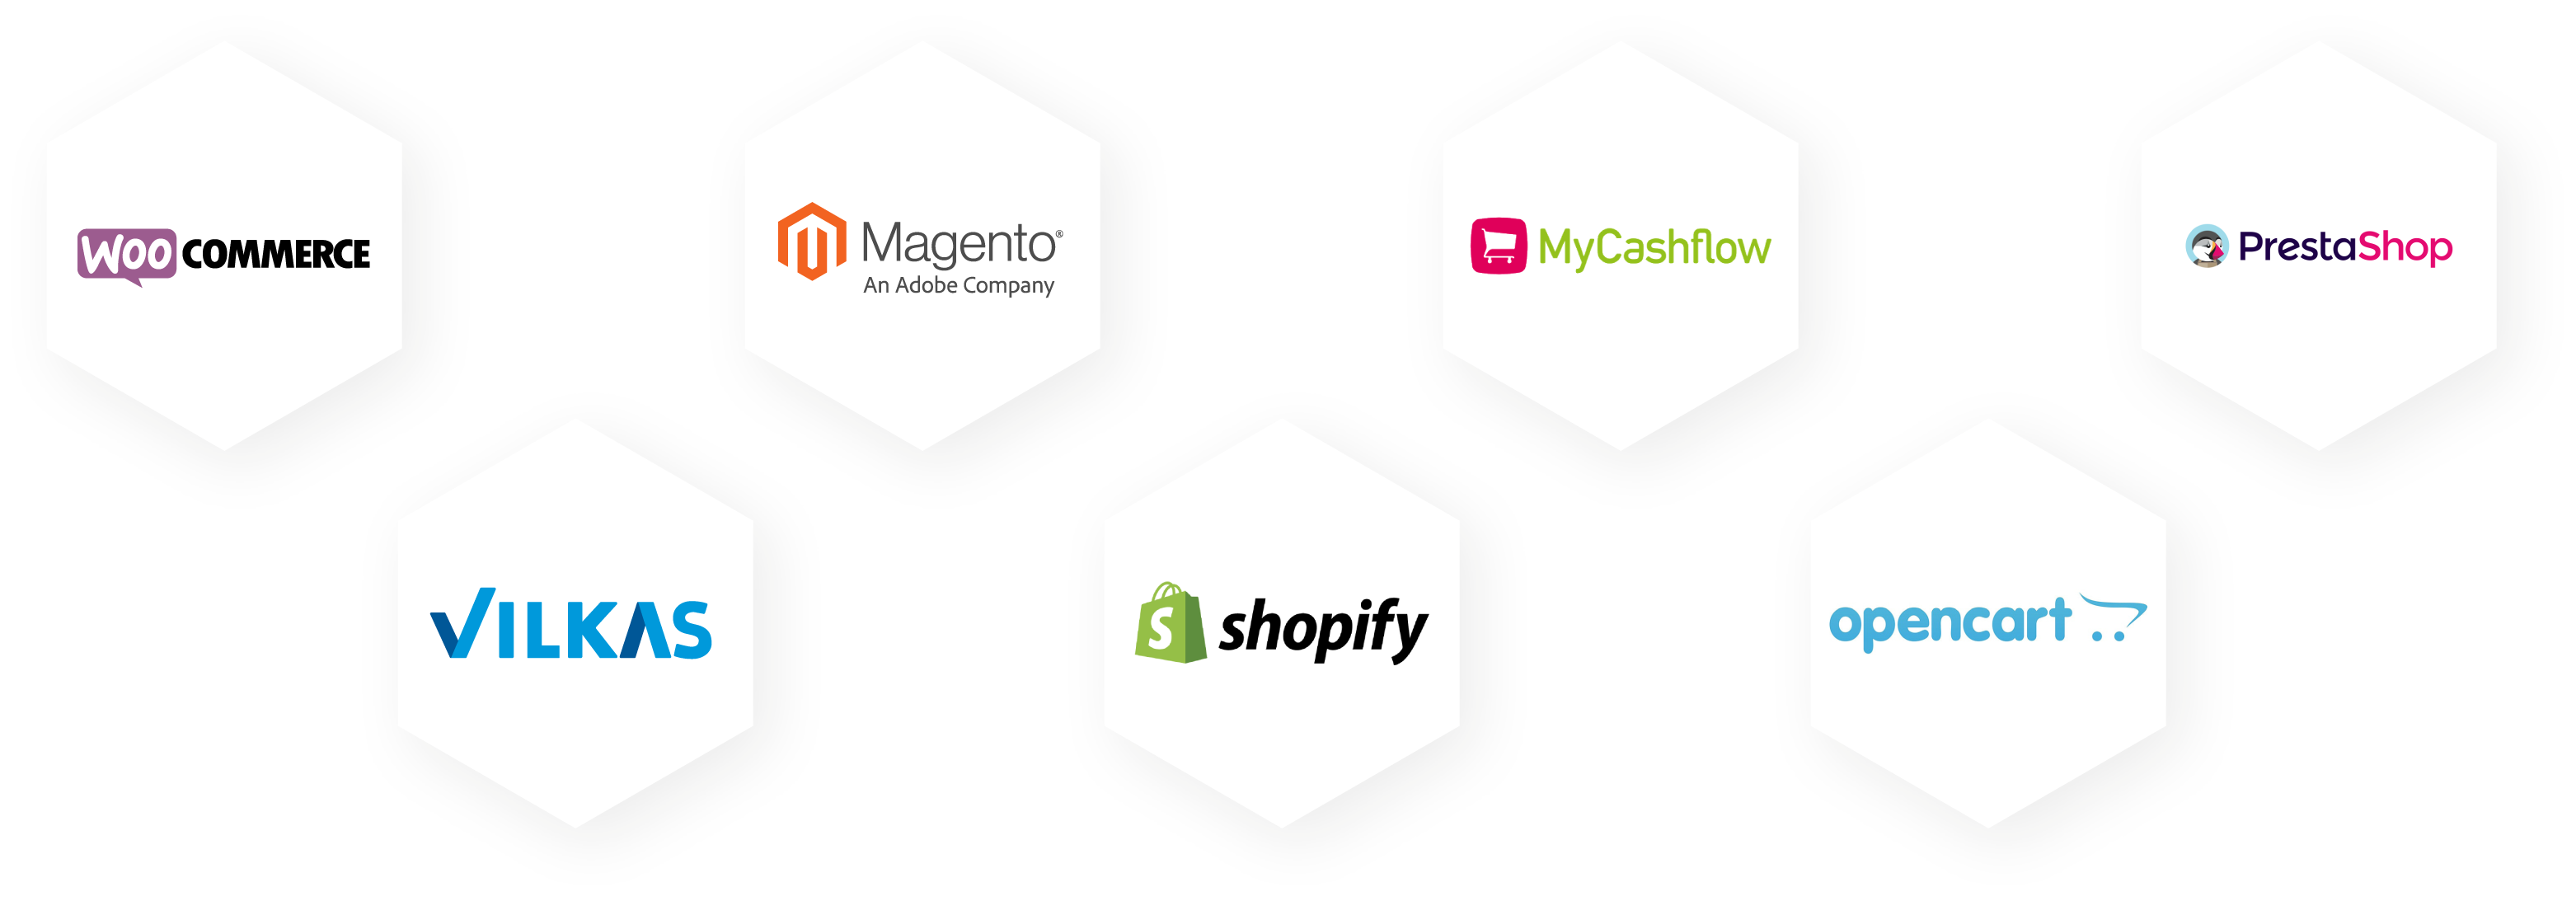 Ogoship 3pl integration partners